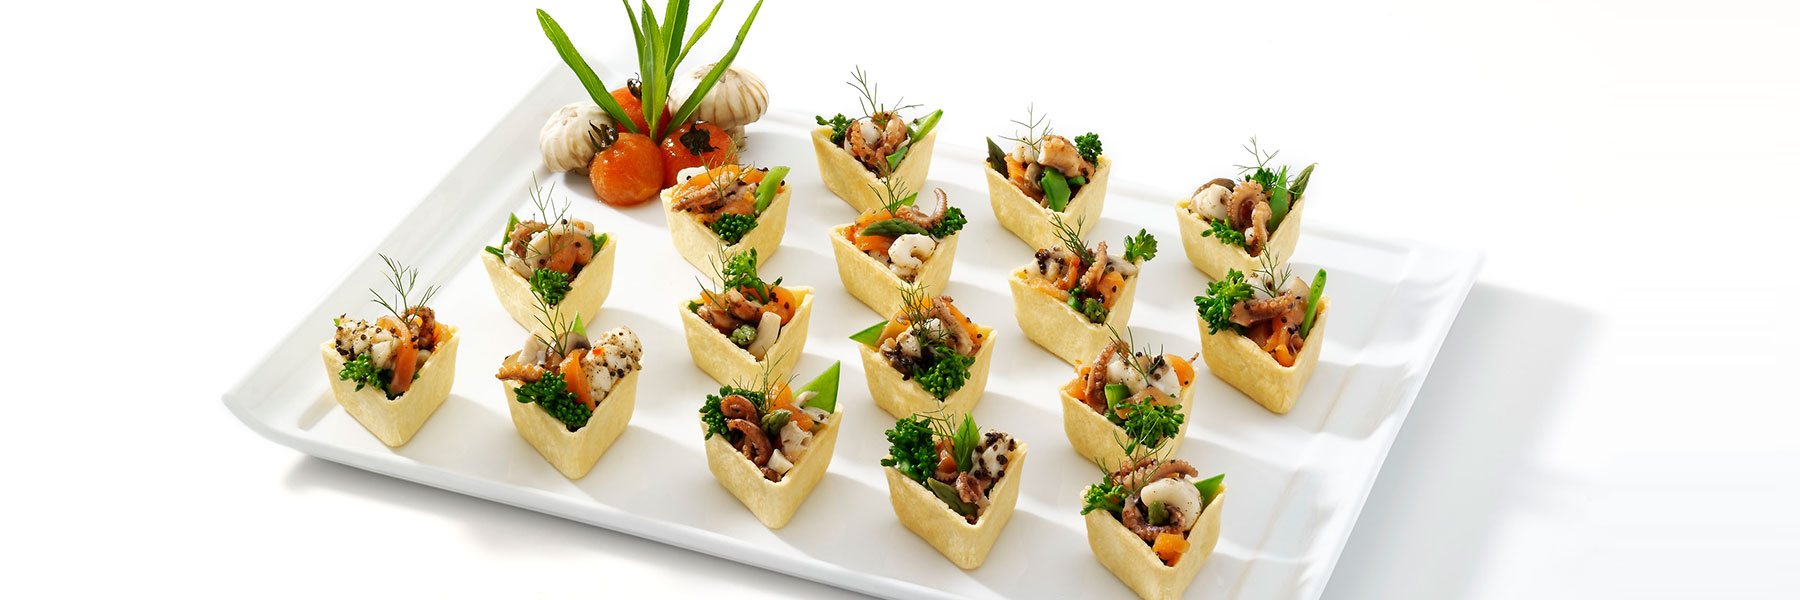 Summer savoury canape recipes for your next event.